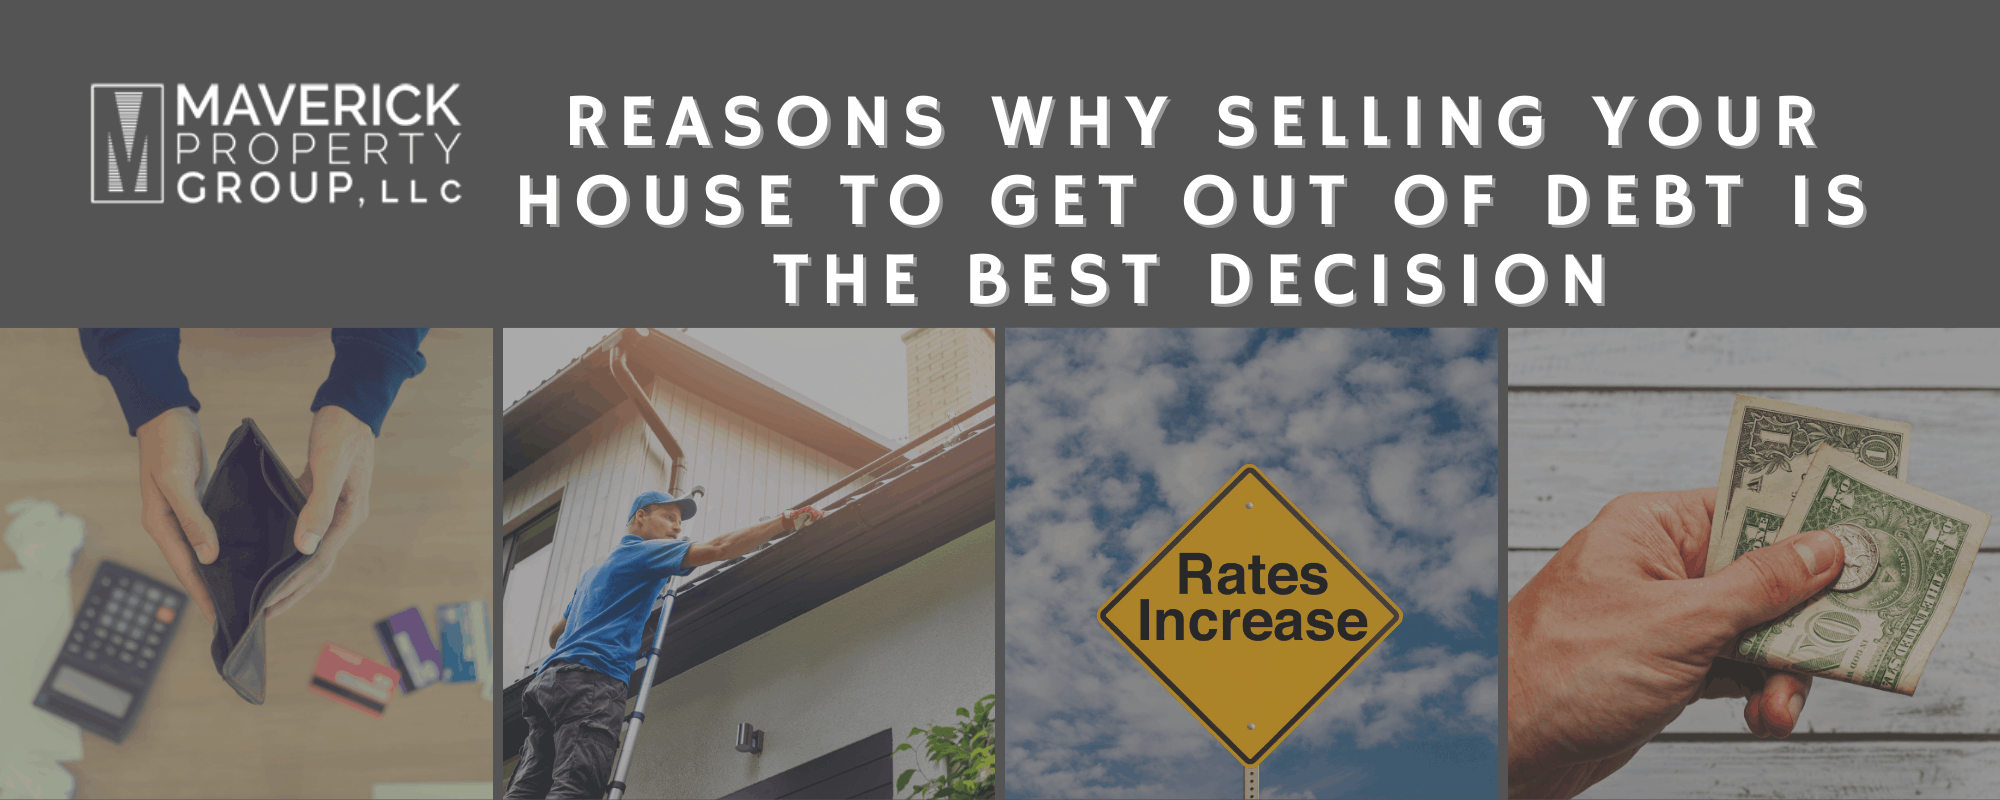 Why Selling Your House to Get Out of Debt Is the Best Decision